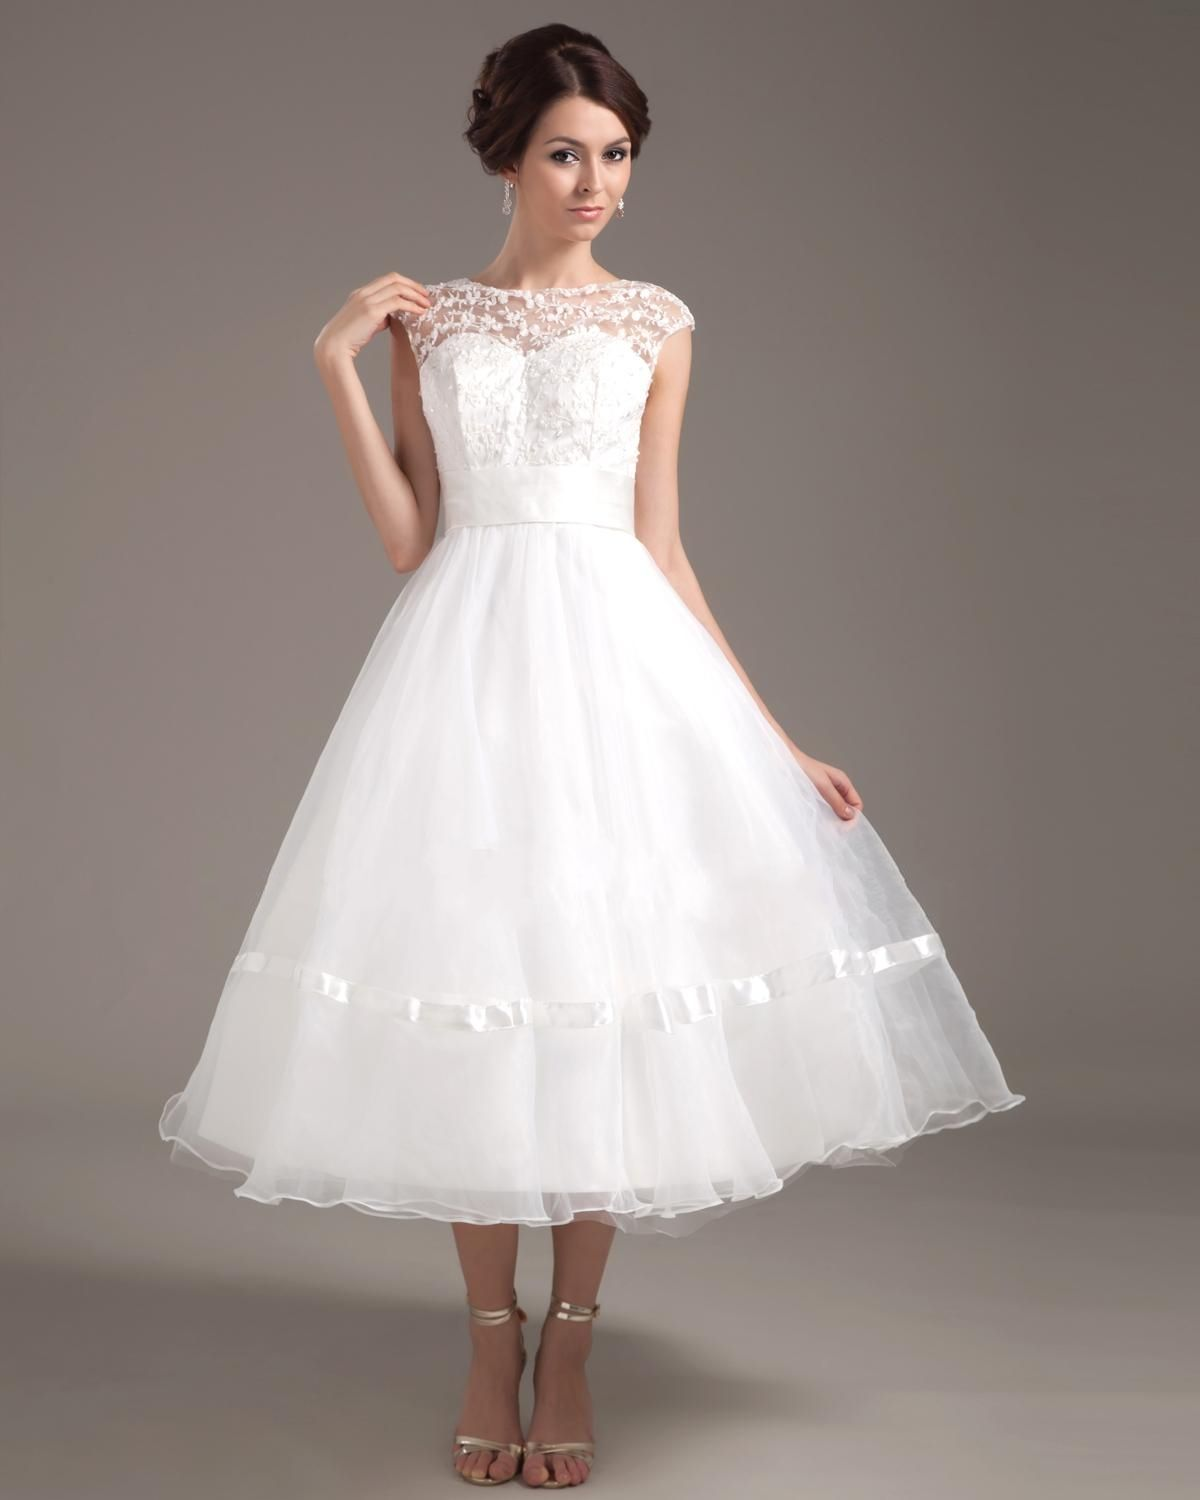 Pretty A Line Bateau Cap Sleeve Tea Length Organza Short Wedding Dress